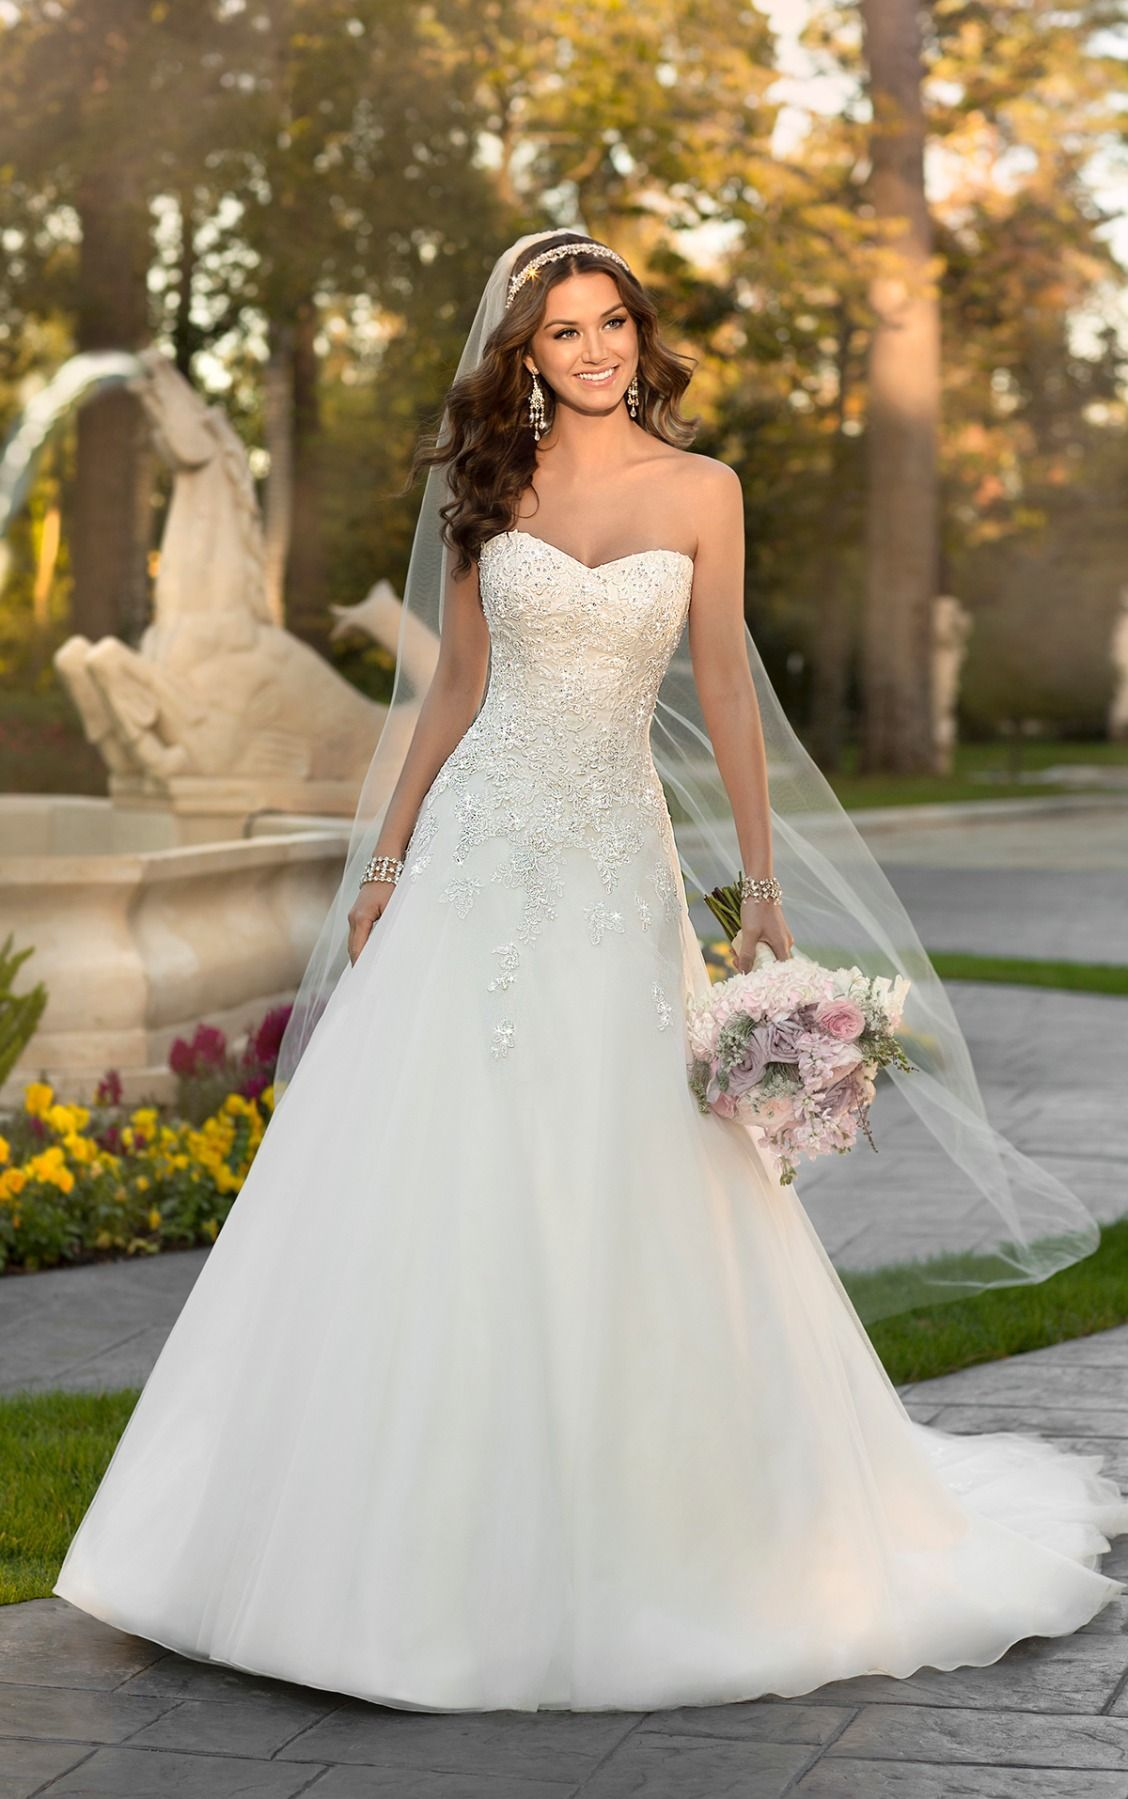 Lace and organza over dolce satin aline wedding dress from the